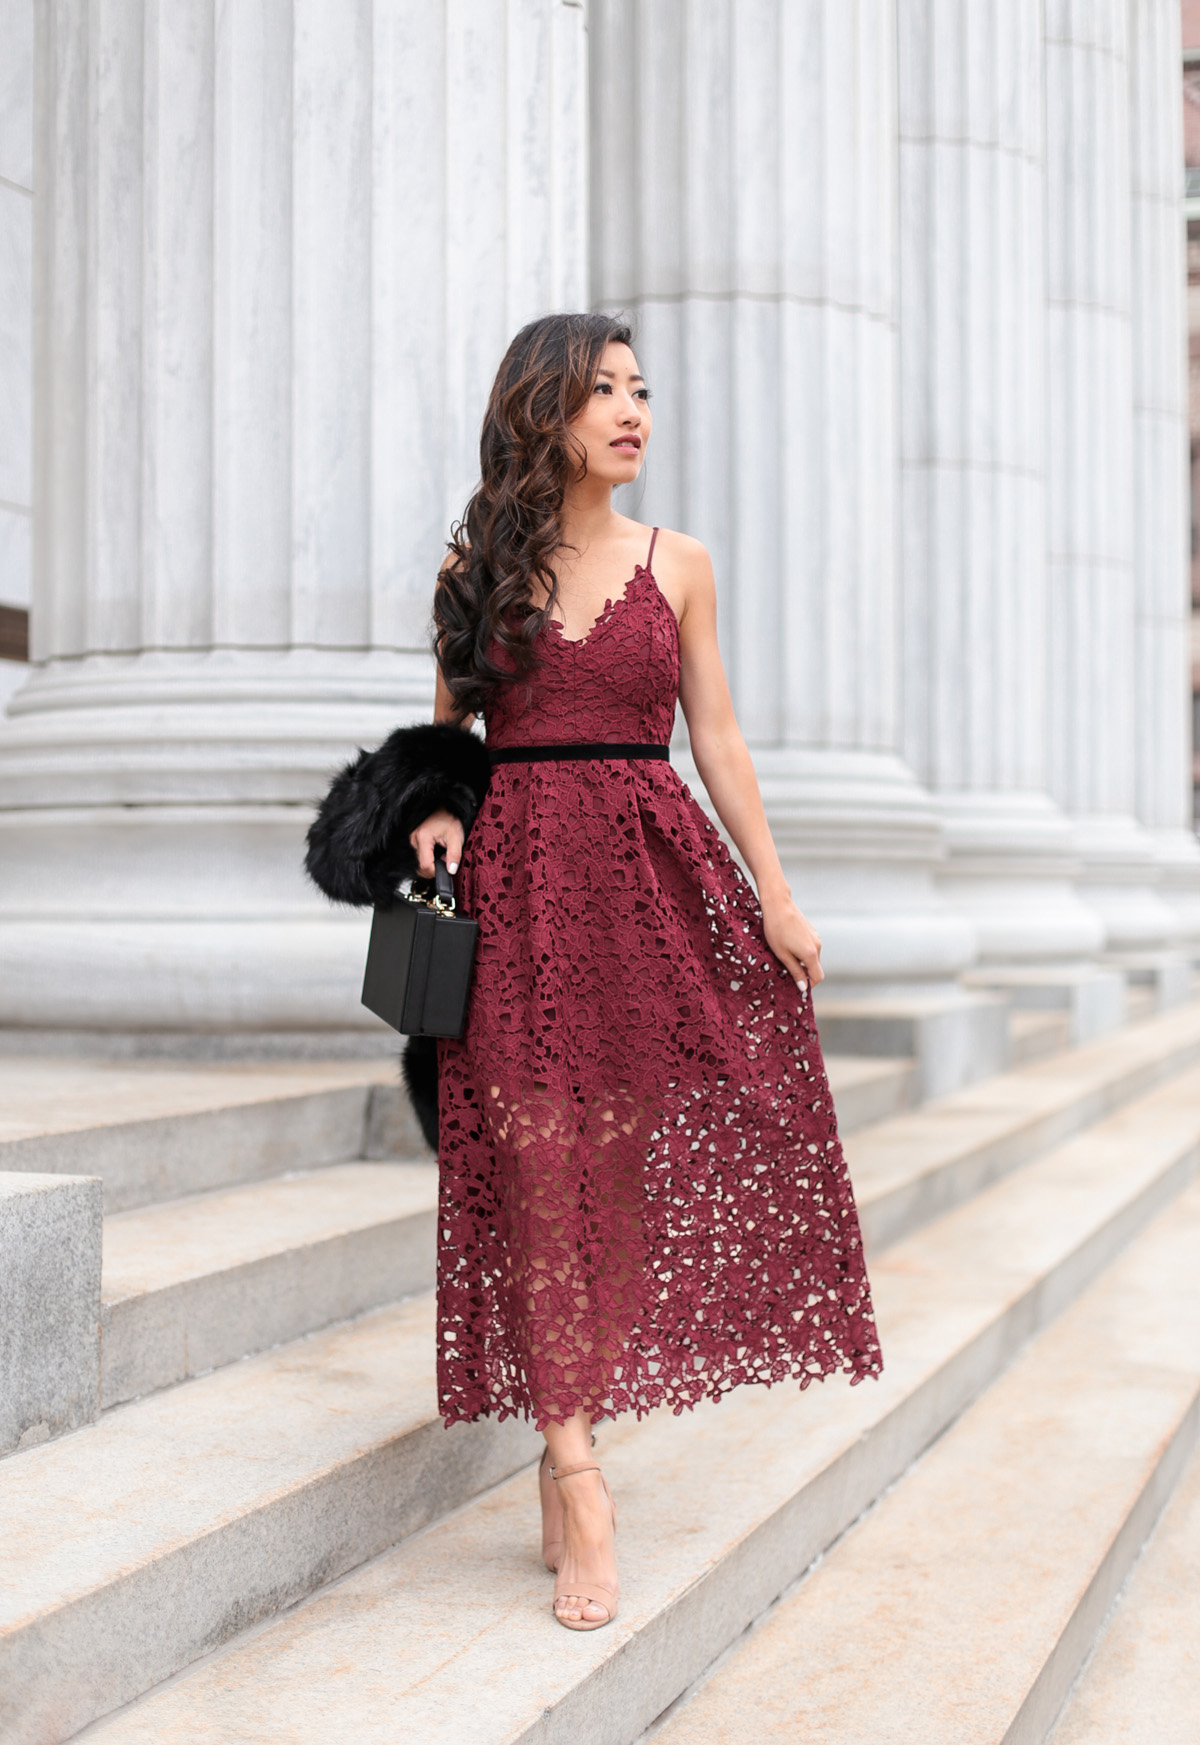 Extra Petite  Fashion style tips and outfit ideas